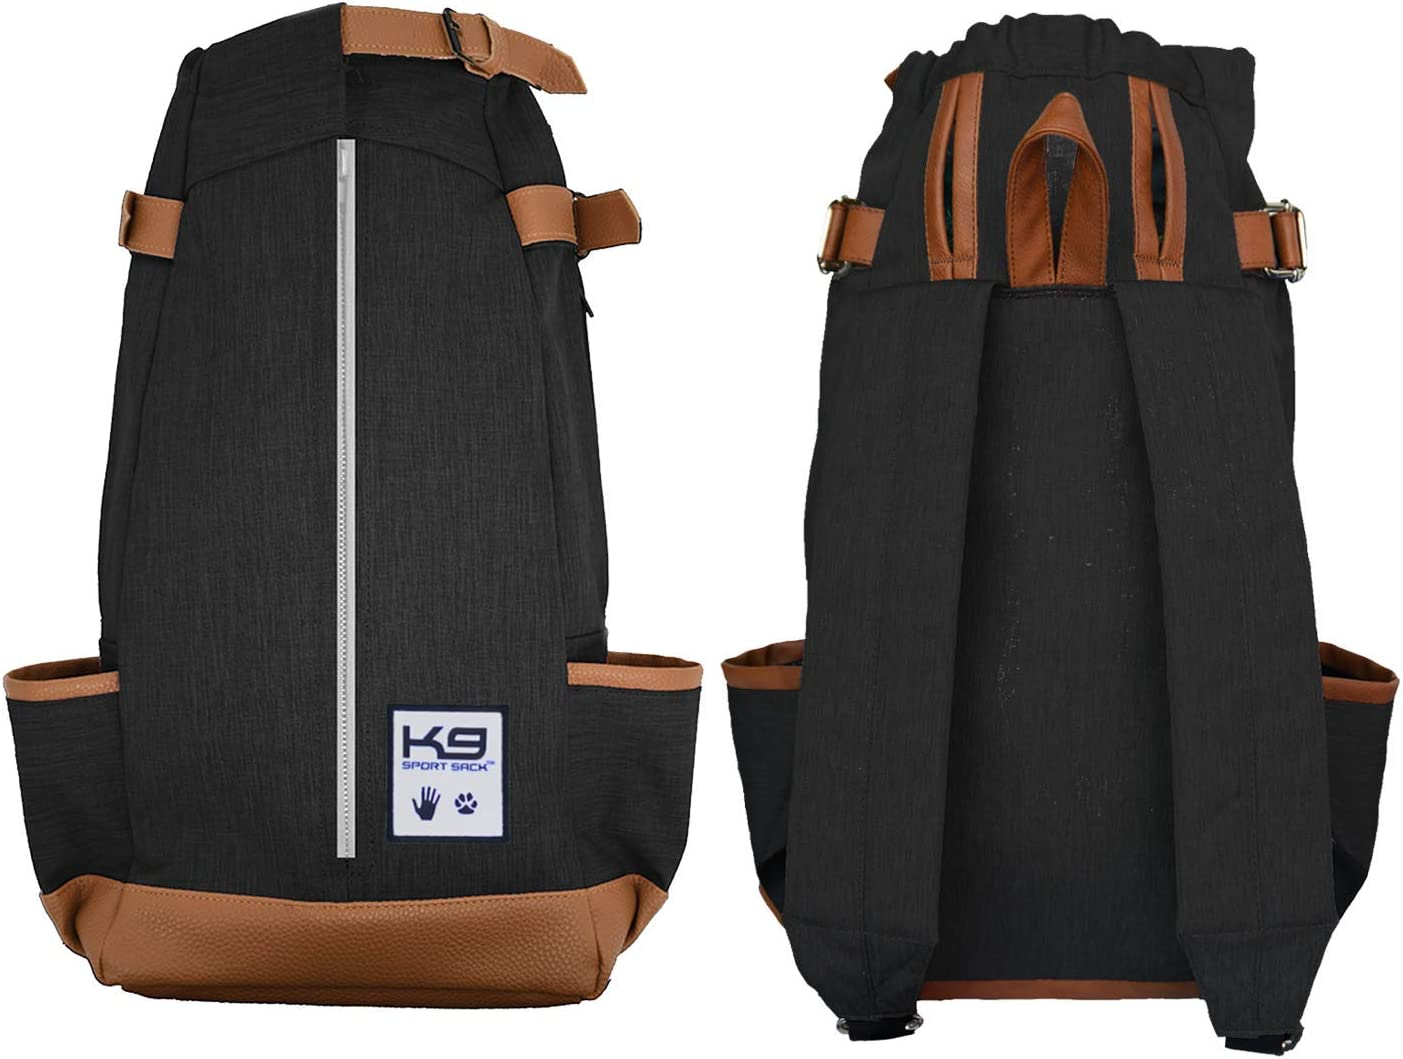 Dog Carrier Backpack for Small and Medium Pets Veterinarian Approved Medium, Air - Jet Black Fully Ventilated Front Facing Adjustable Pack with Storage Bag K9 Sport Sack